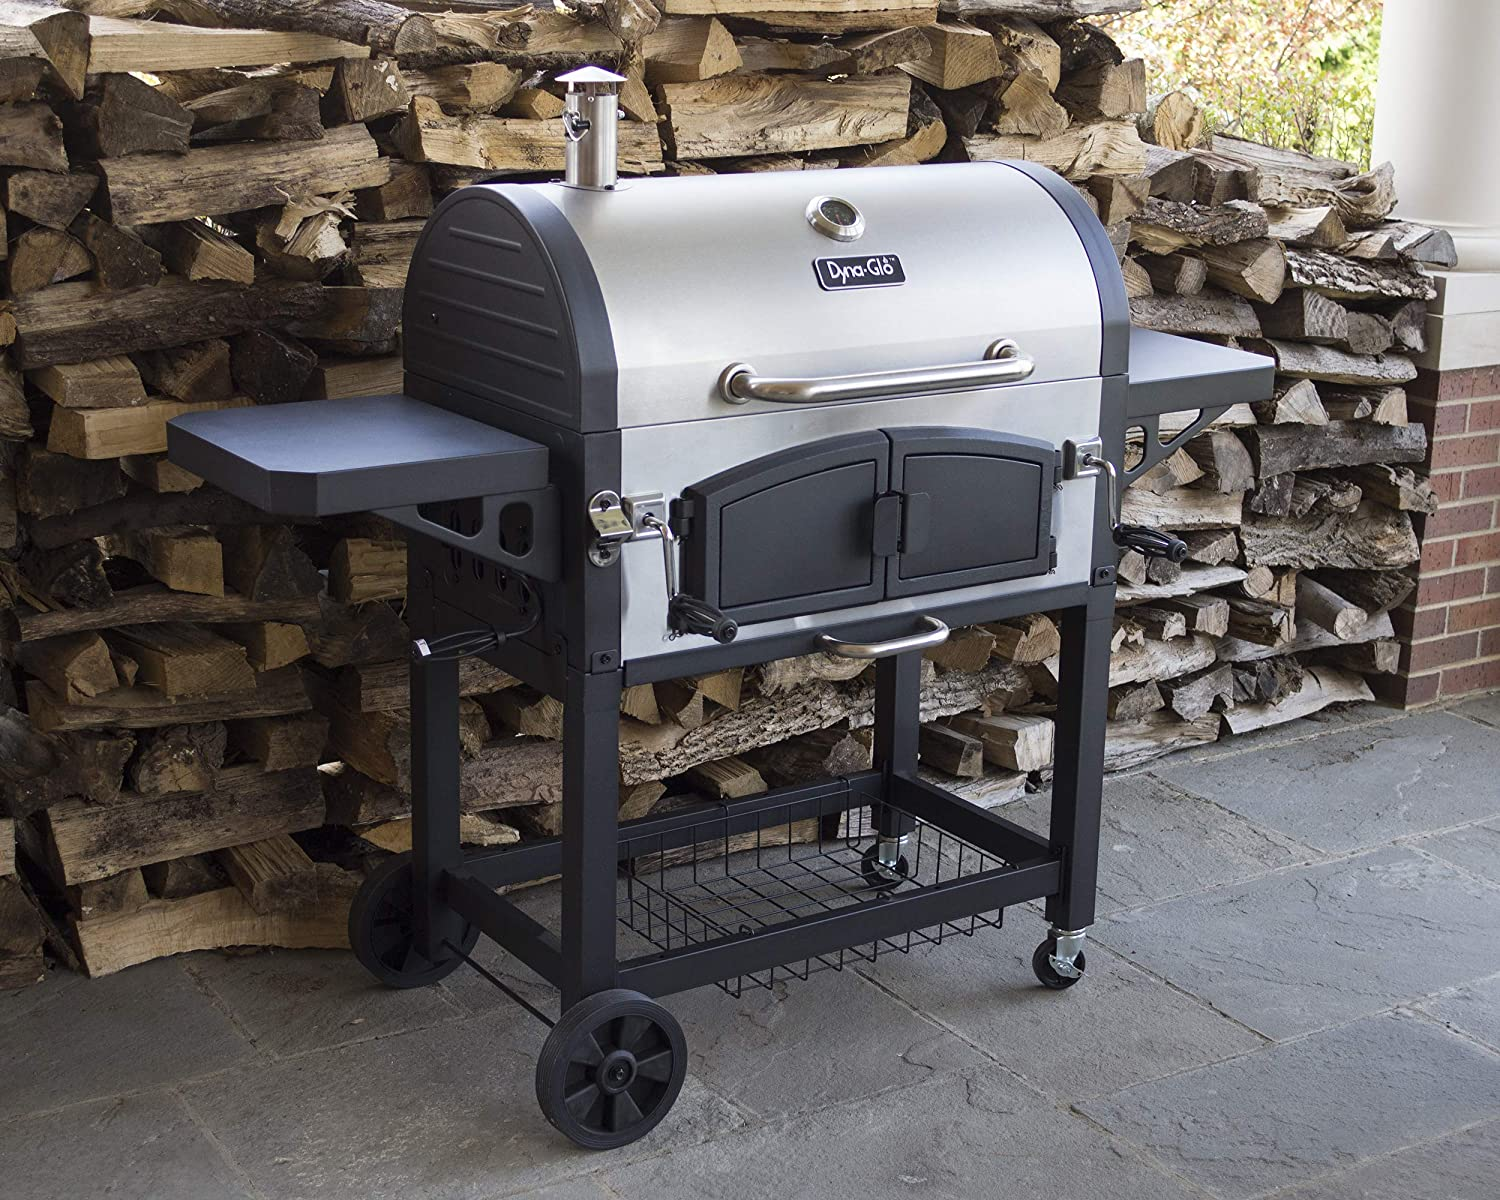 Which Brand of Grill is the Best?